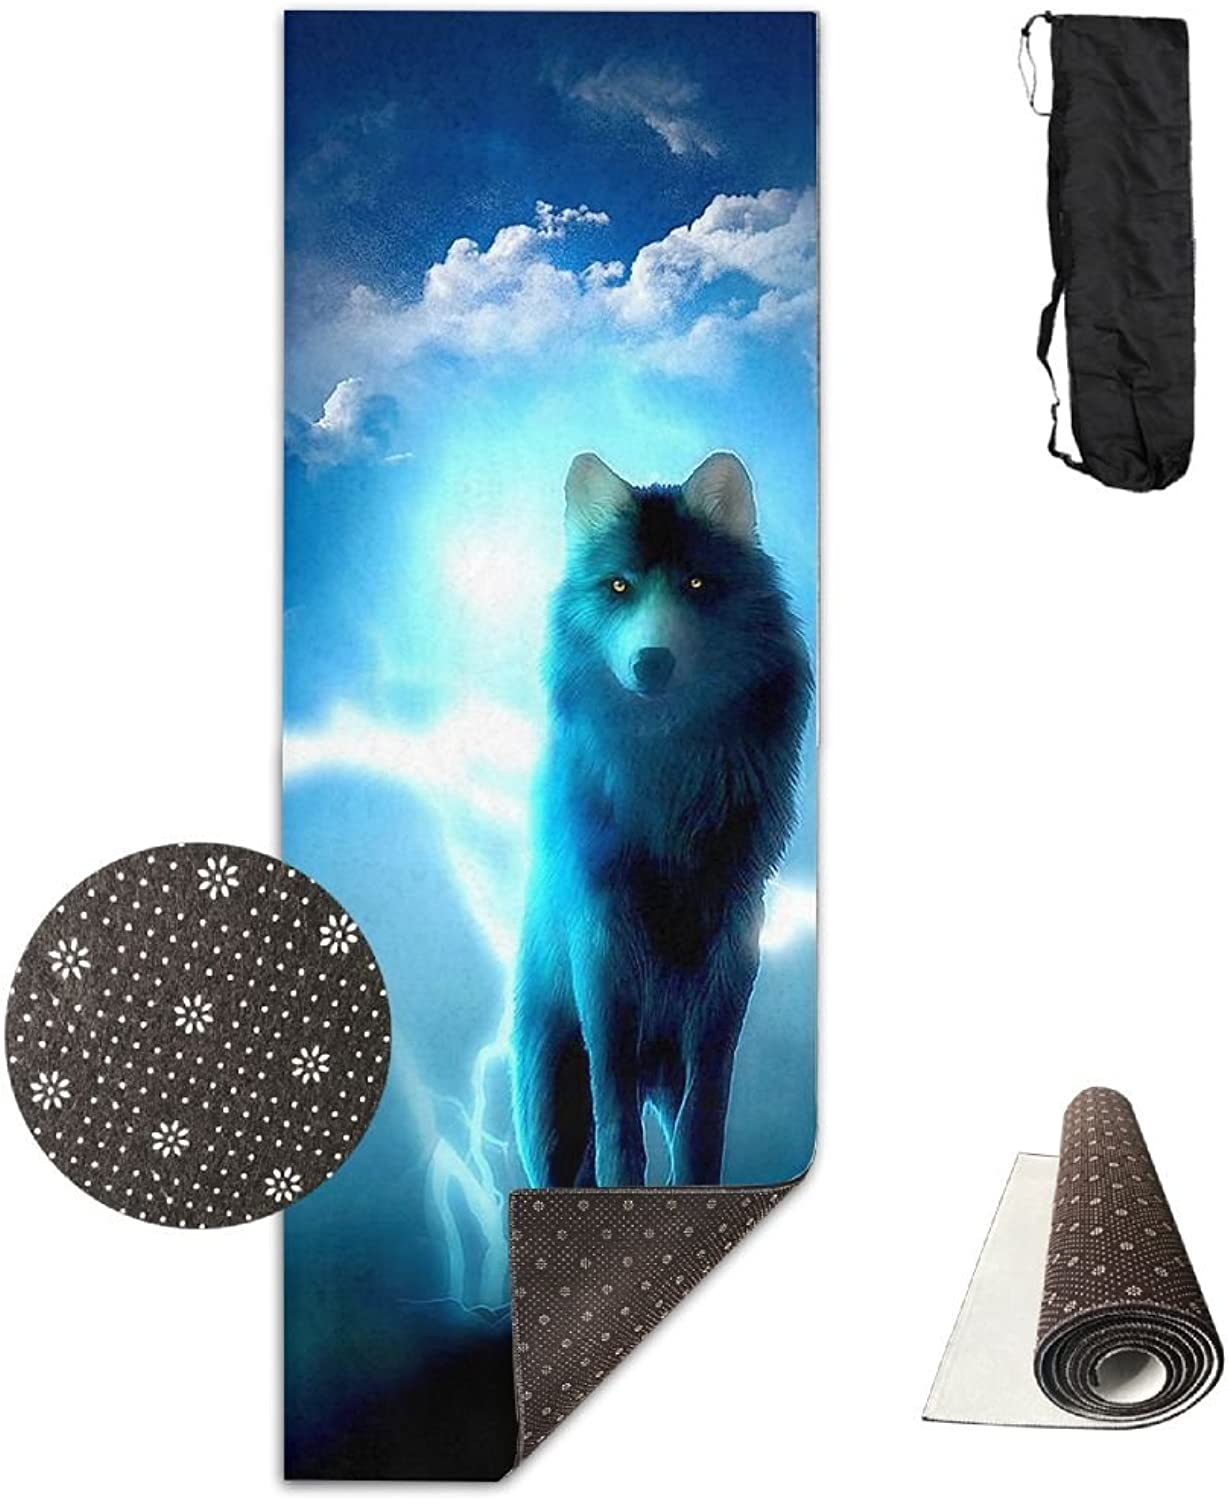 Gym Mat blueee Wolf Fitness High Density AntiTear Exercise Yoga Mat With Carrying Bag For Exercise,Pilates